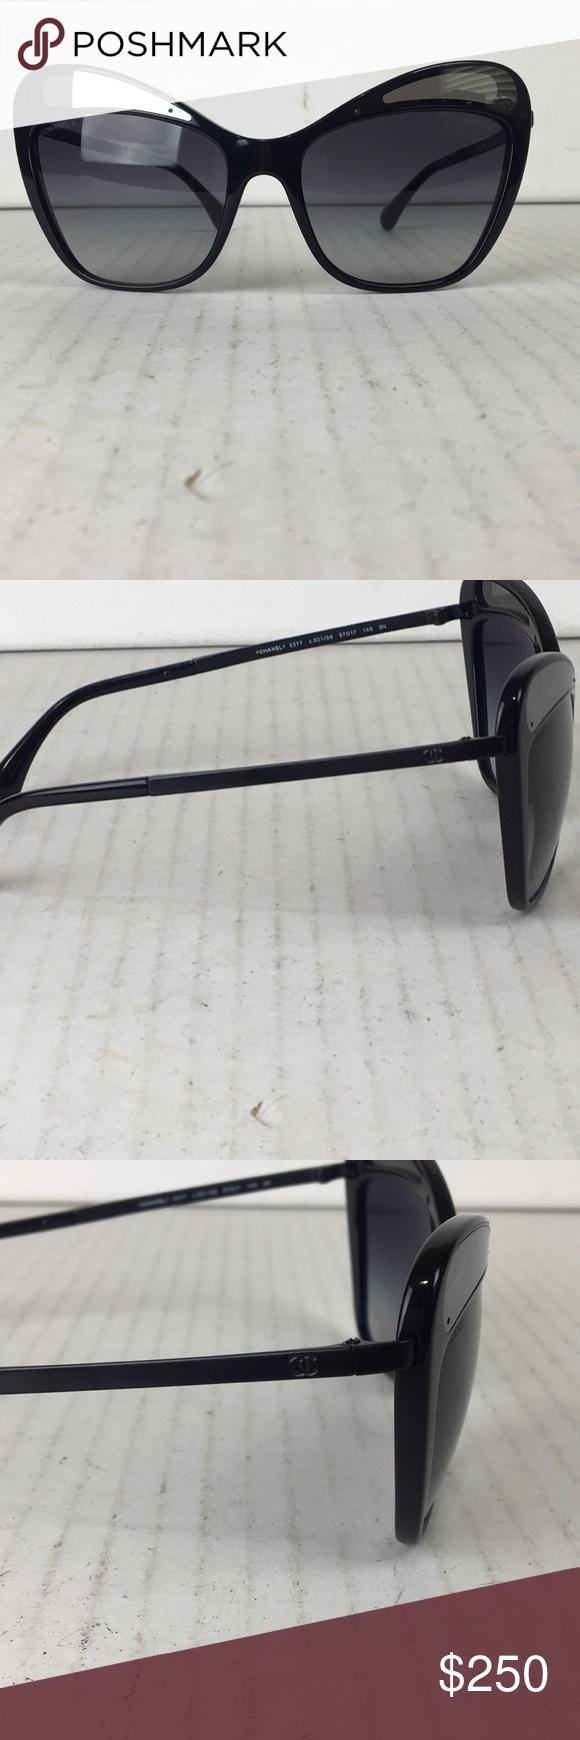 5f47139f6b3a CHANEL BUTTERFLY SUNGLASSES CHANEL BUTTERFLY SUNGLASSES 100 AUTHENTIC BLACK  WITH MIRRORED DETAILS EXCELLENT CONDITION NEW WITHOUT TAG GREAT FOR SUMMER  VERY ...